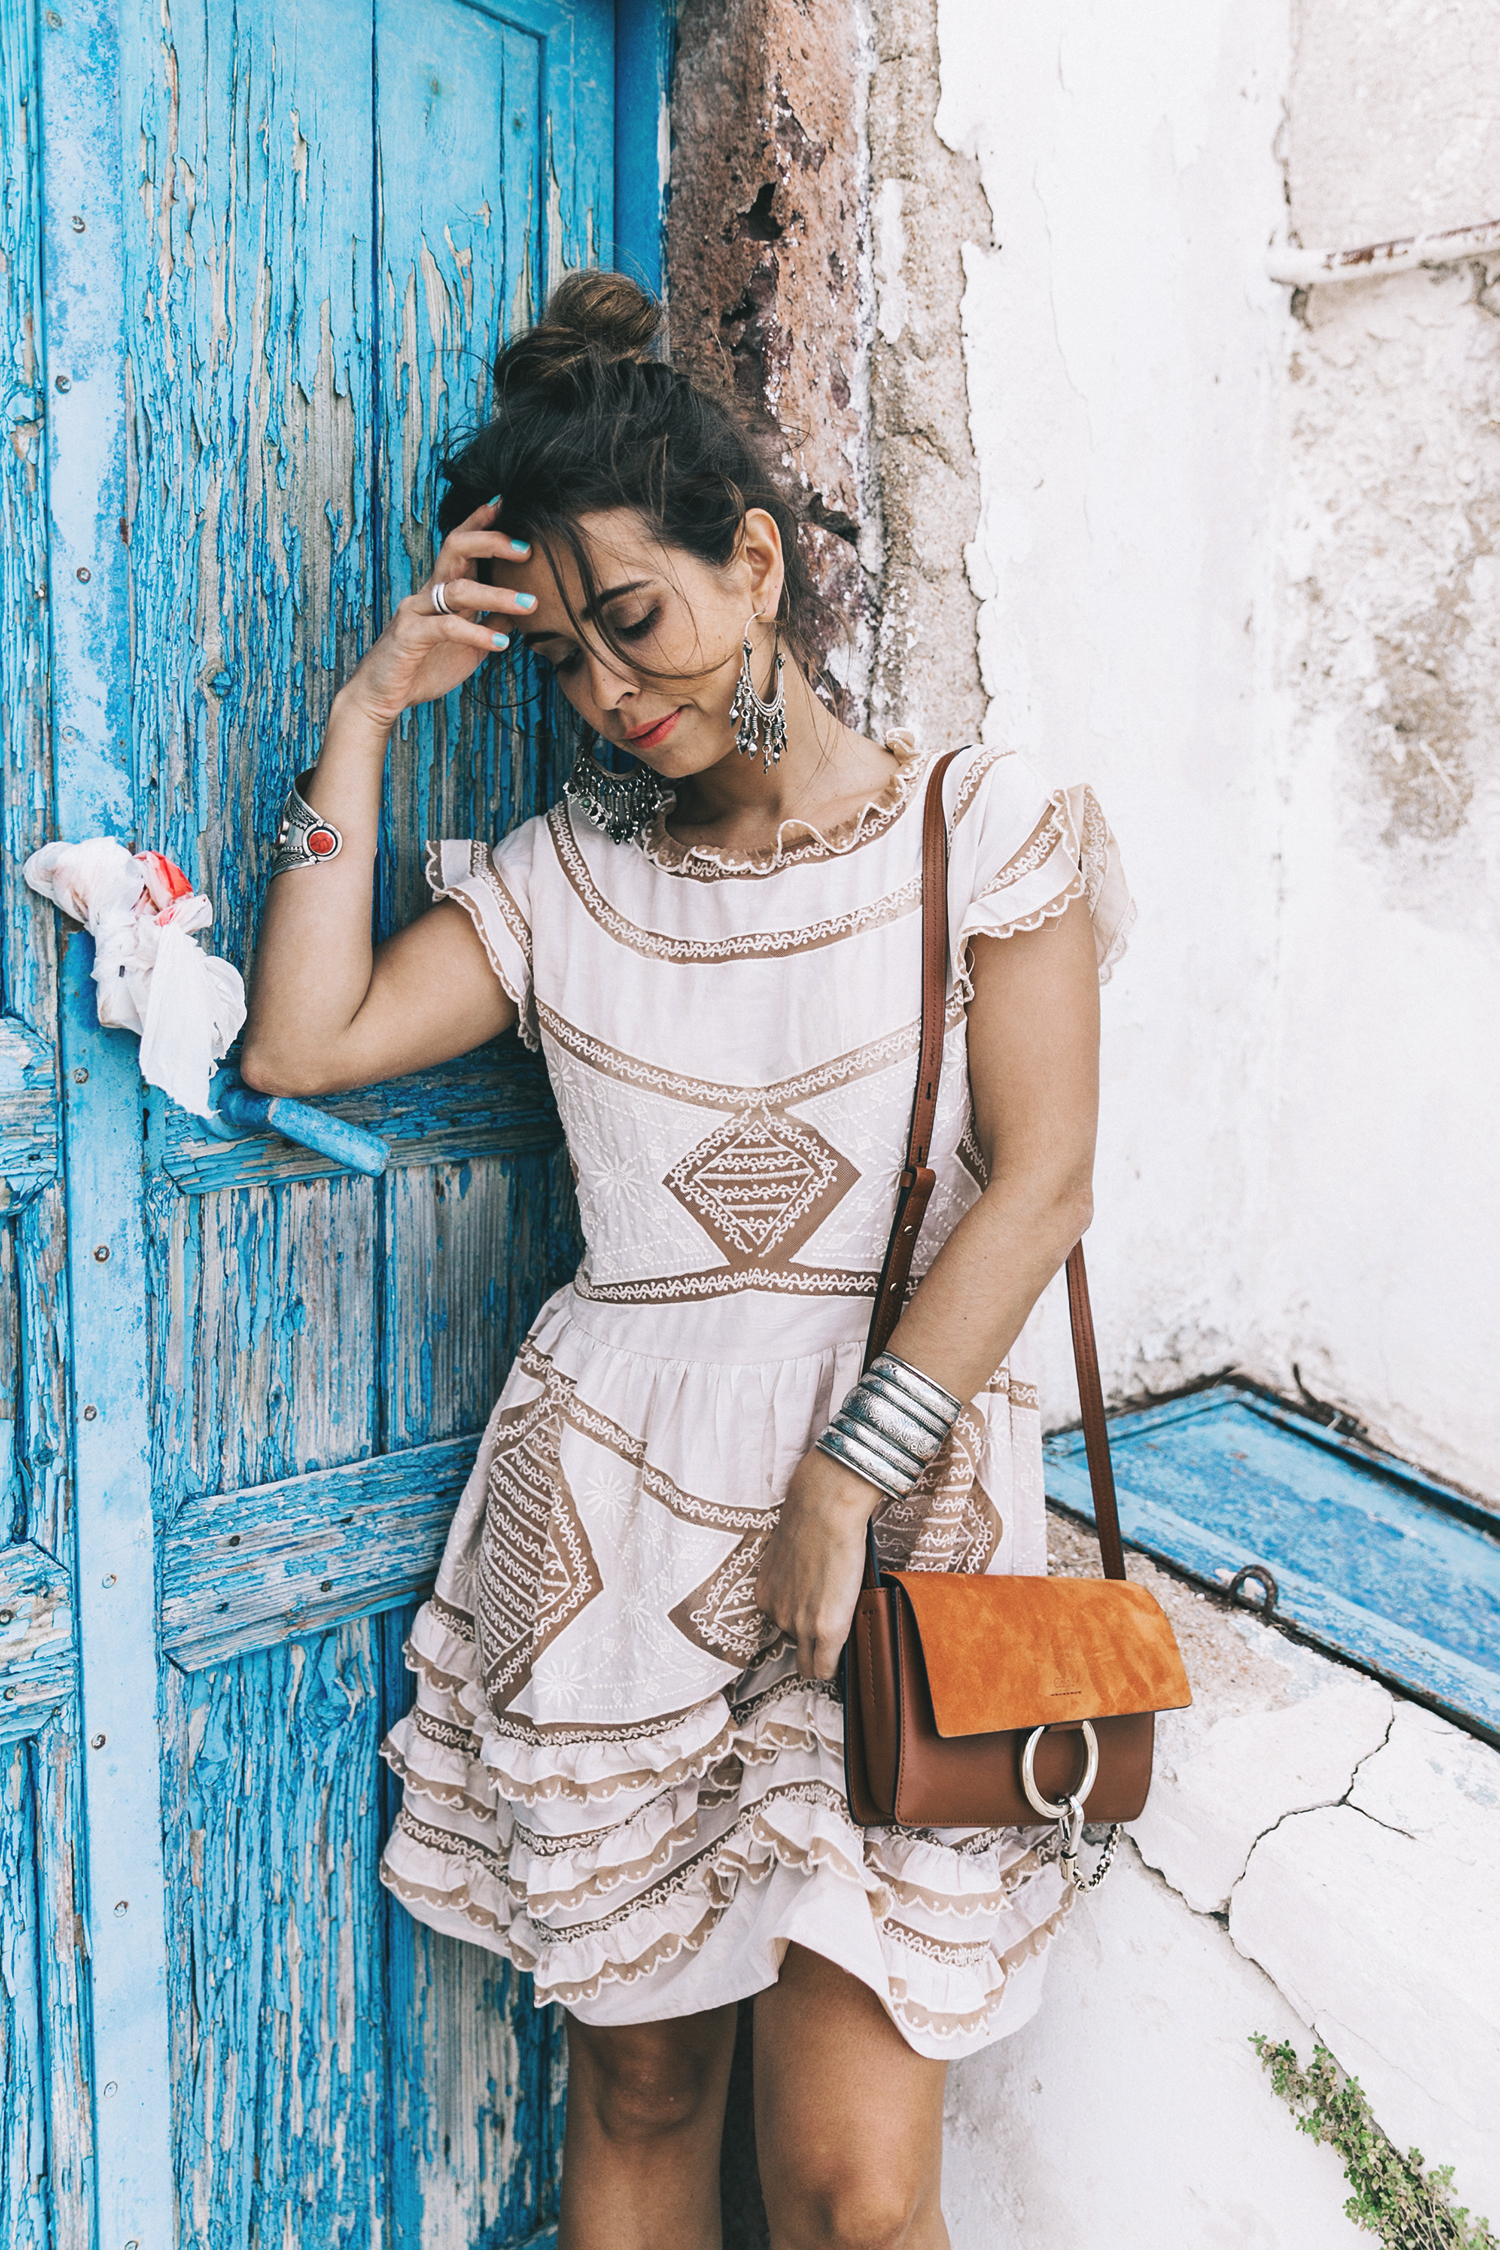 Chloe_Bag-Faye_Bag-For_Love_And_Lemons-Dress-Topknot-Soludos_Escapes-Soludos_Espadrilles-Summer-Santorini-Collage_Vintage-72